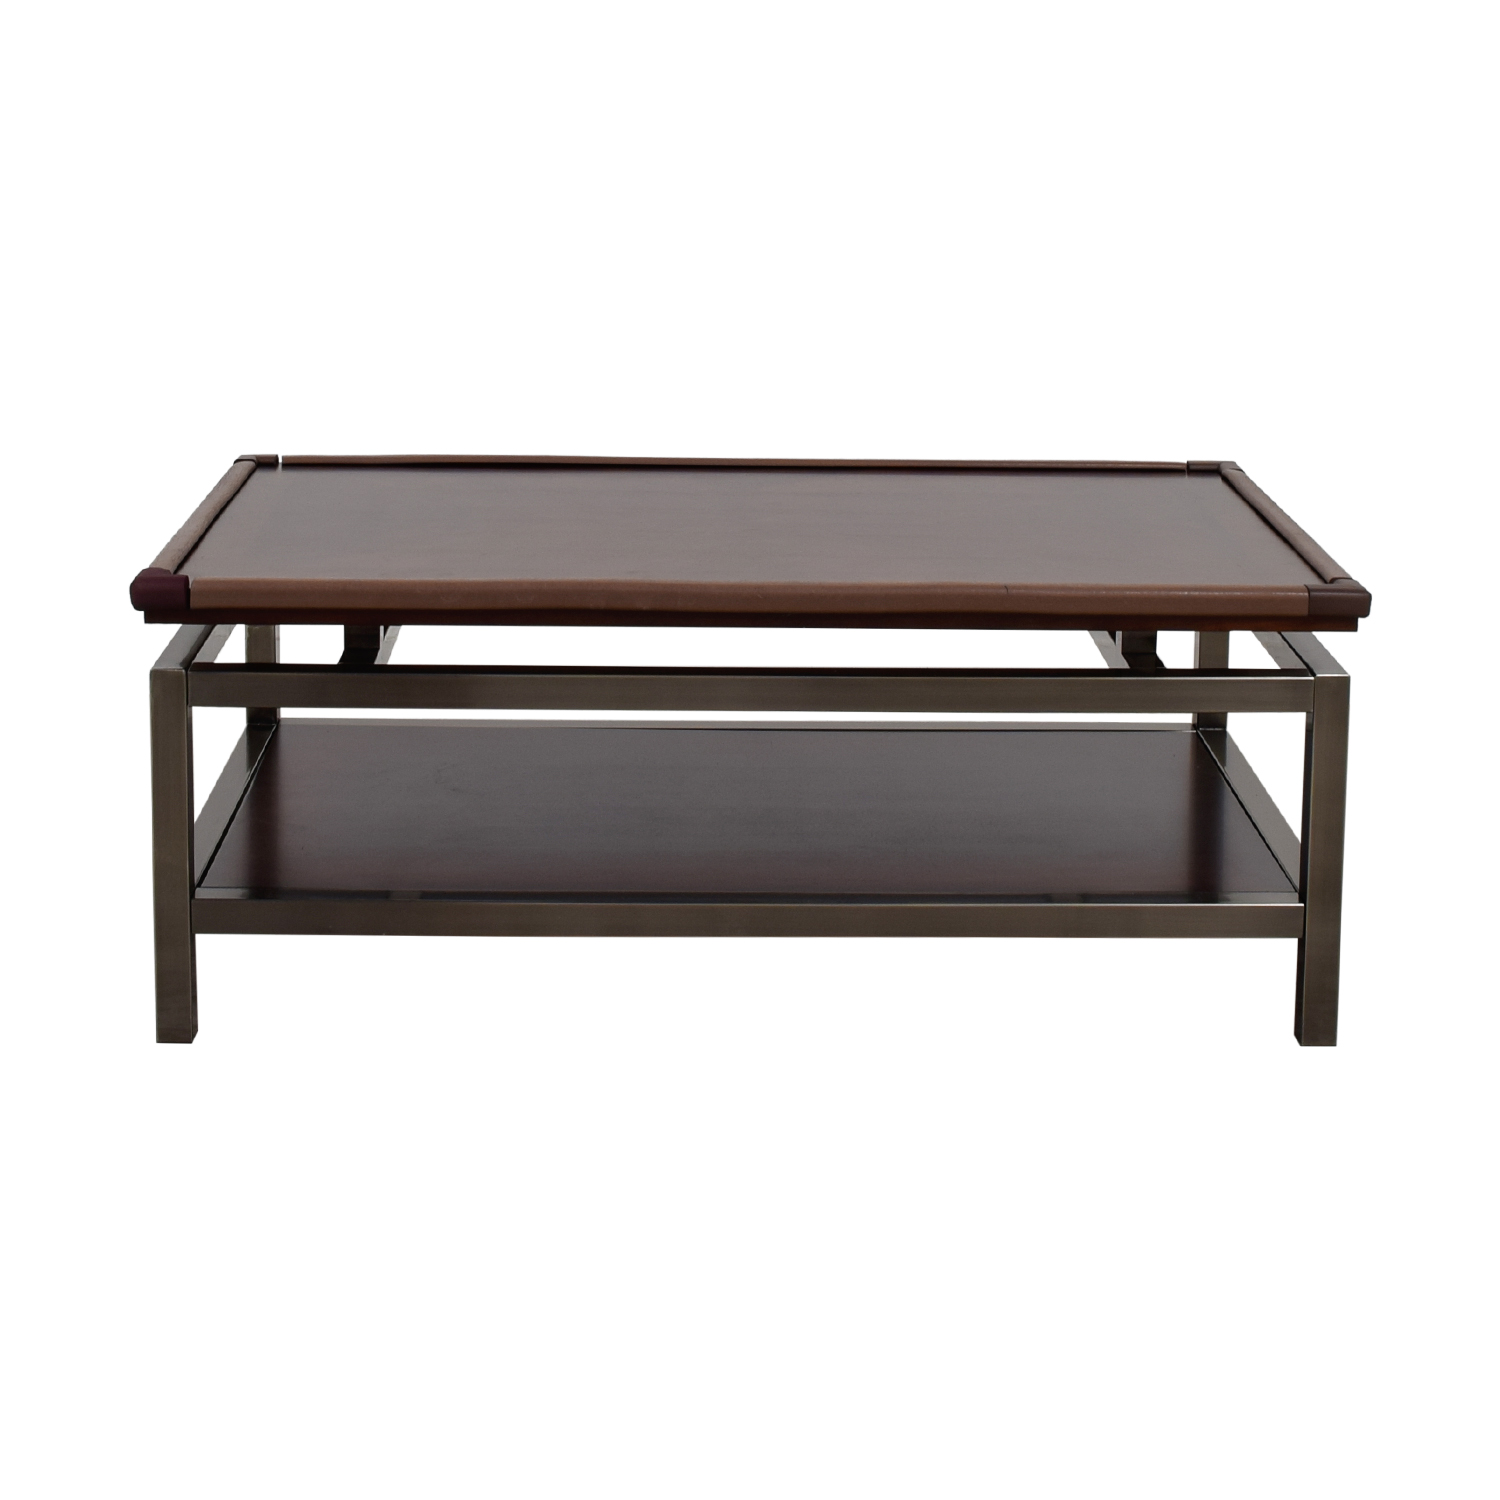 shop Raymour & Flanagan Wood and Chrome Coffee Table Raymour & Flanagan